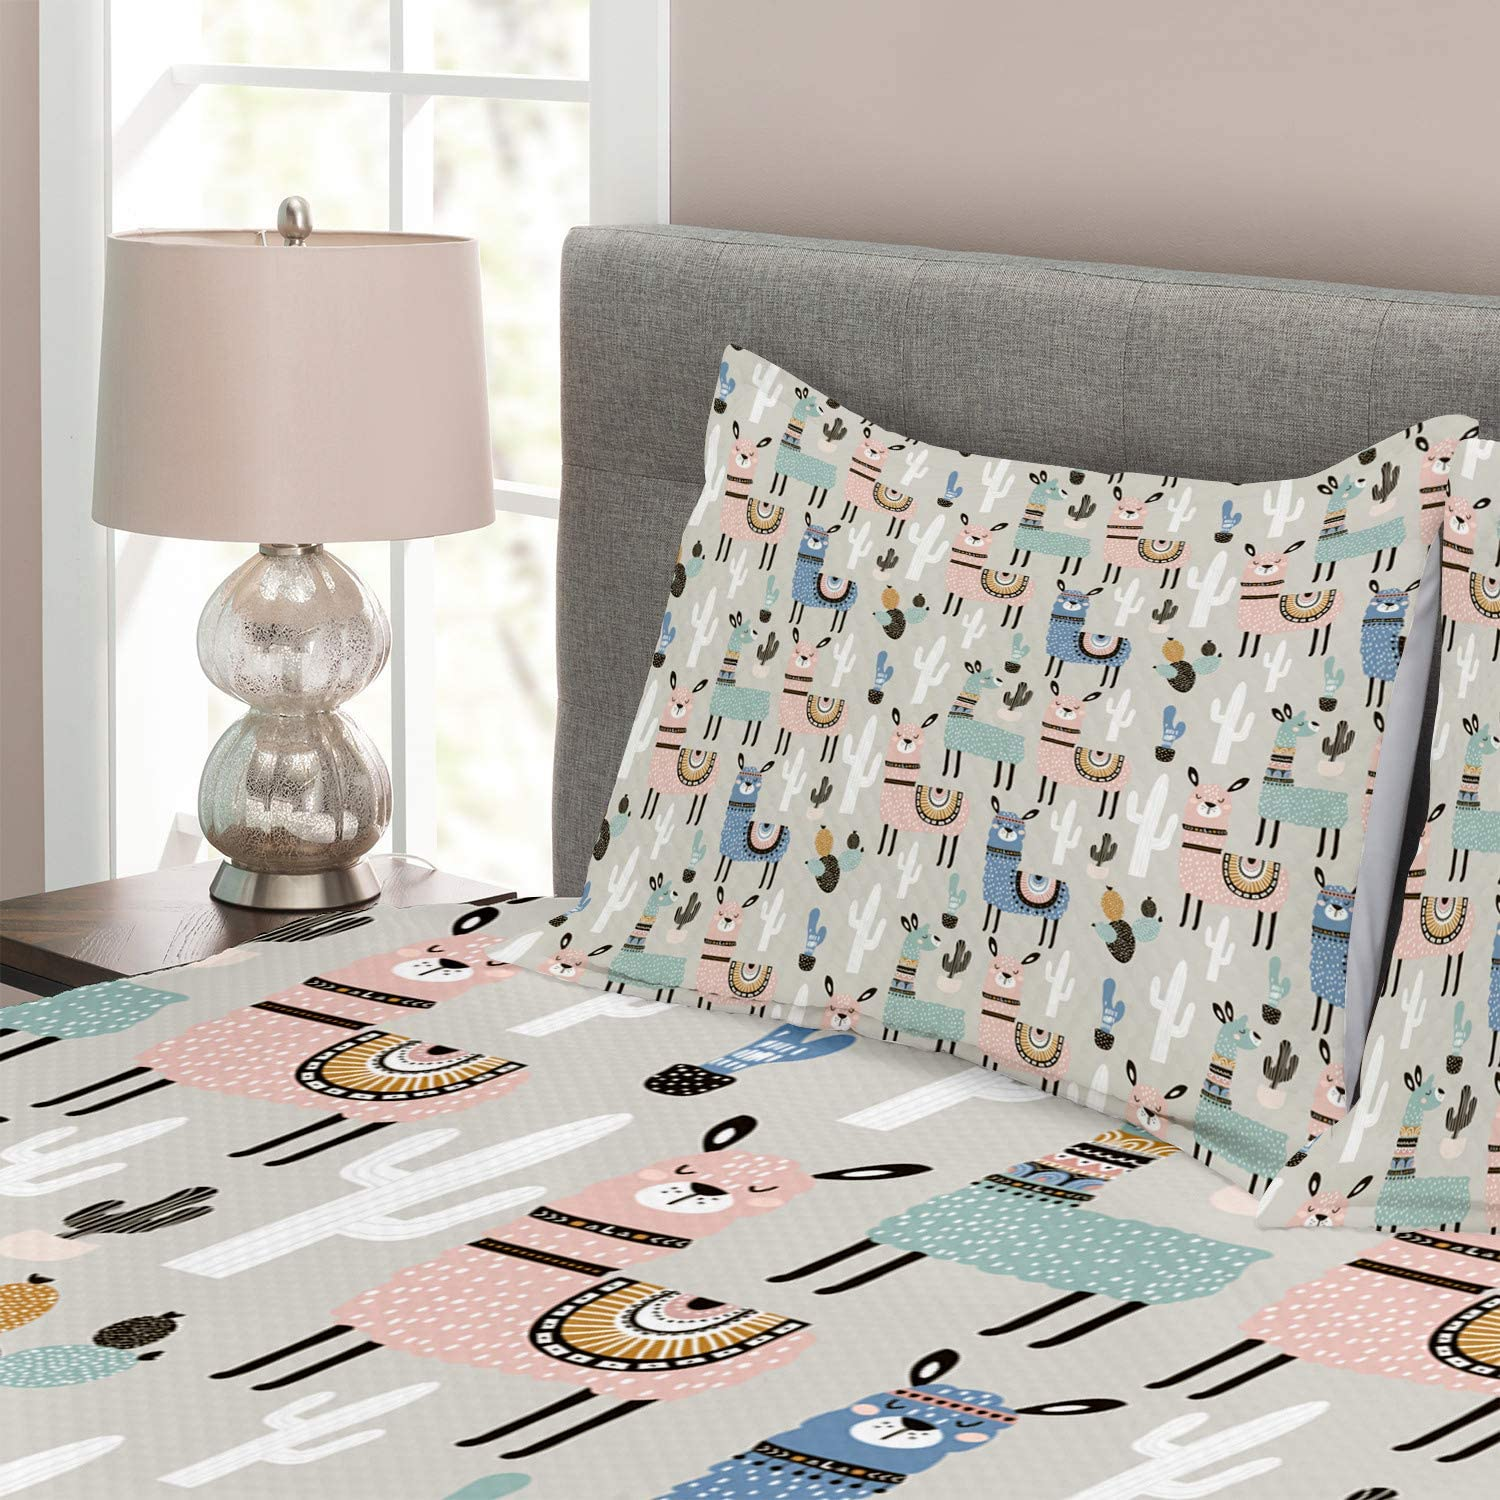 Decorative Quilted 3 Piece Coverlet Set with 2 Pillow Shams Multicolor Llama Guanaco South American Animals Childish Hand Drawn Style Cartoon Art Print Queen Size Ambesonne Doodle Bedspread